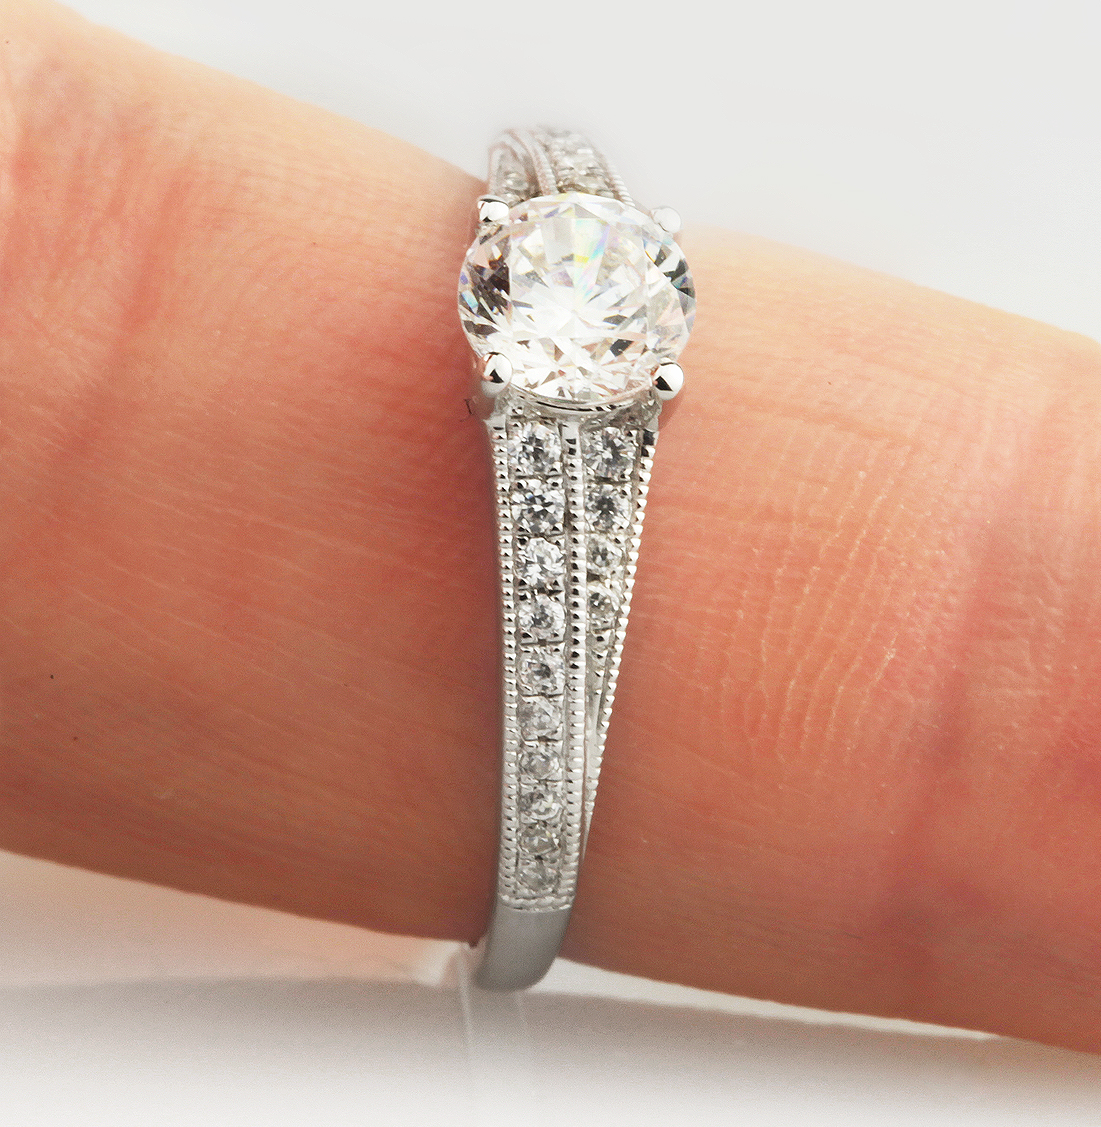 average cost of carat diamond engagement ring